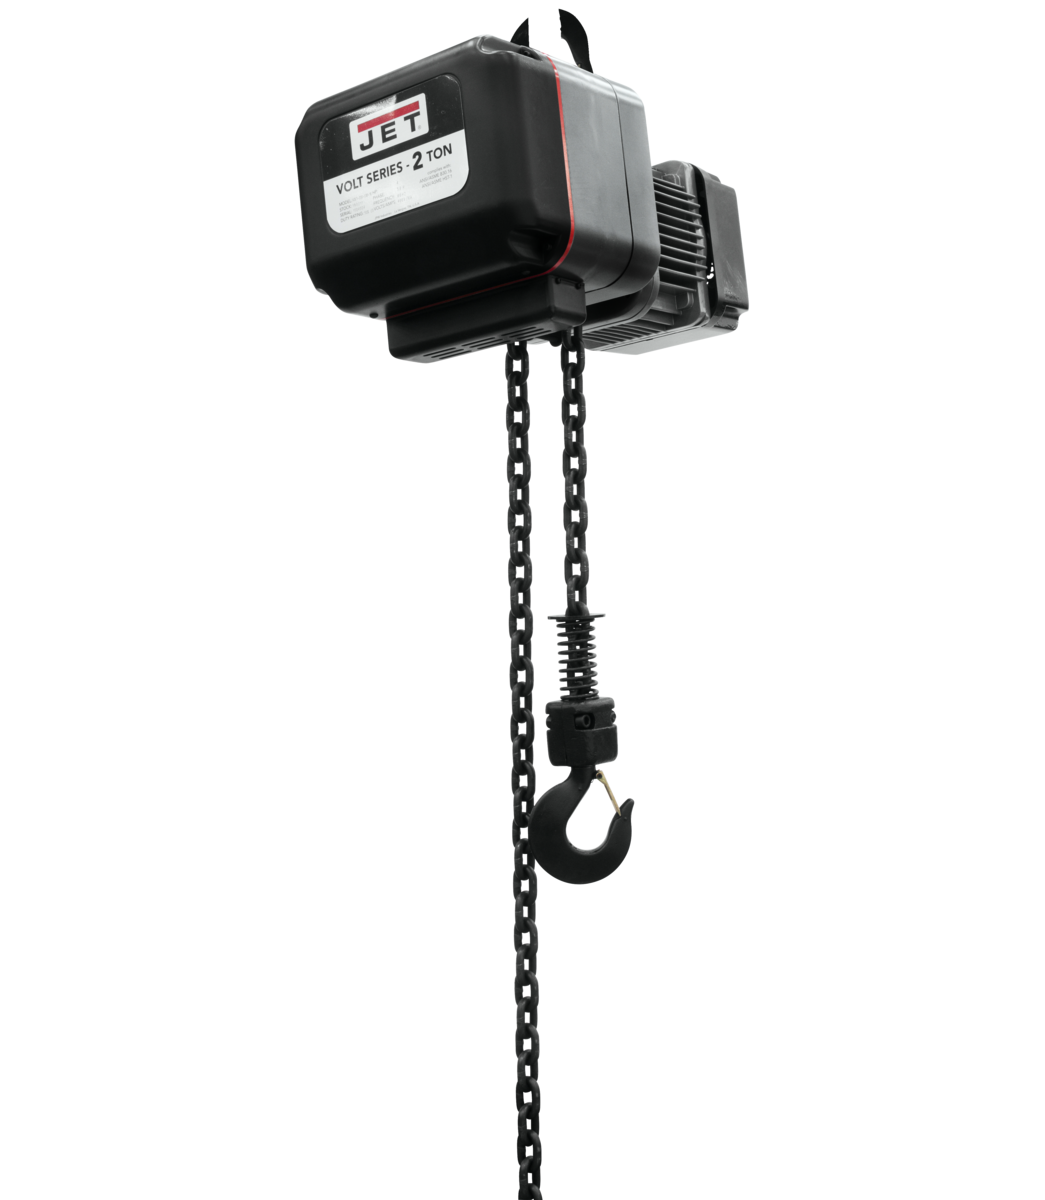 VOLT 2T VARIABLE-SPEED ELECTRIC HOIST  3PH 230V 20' LIFT